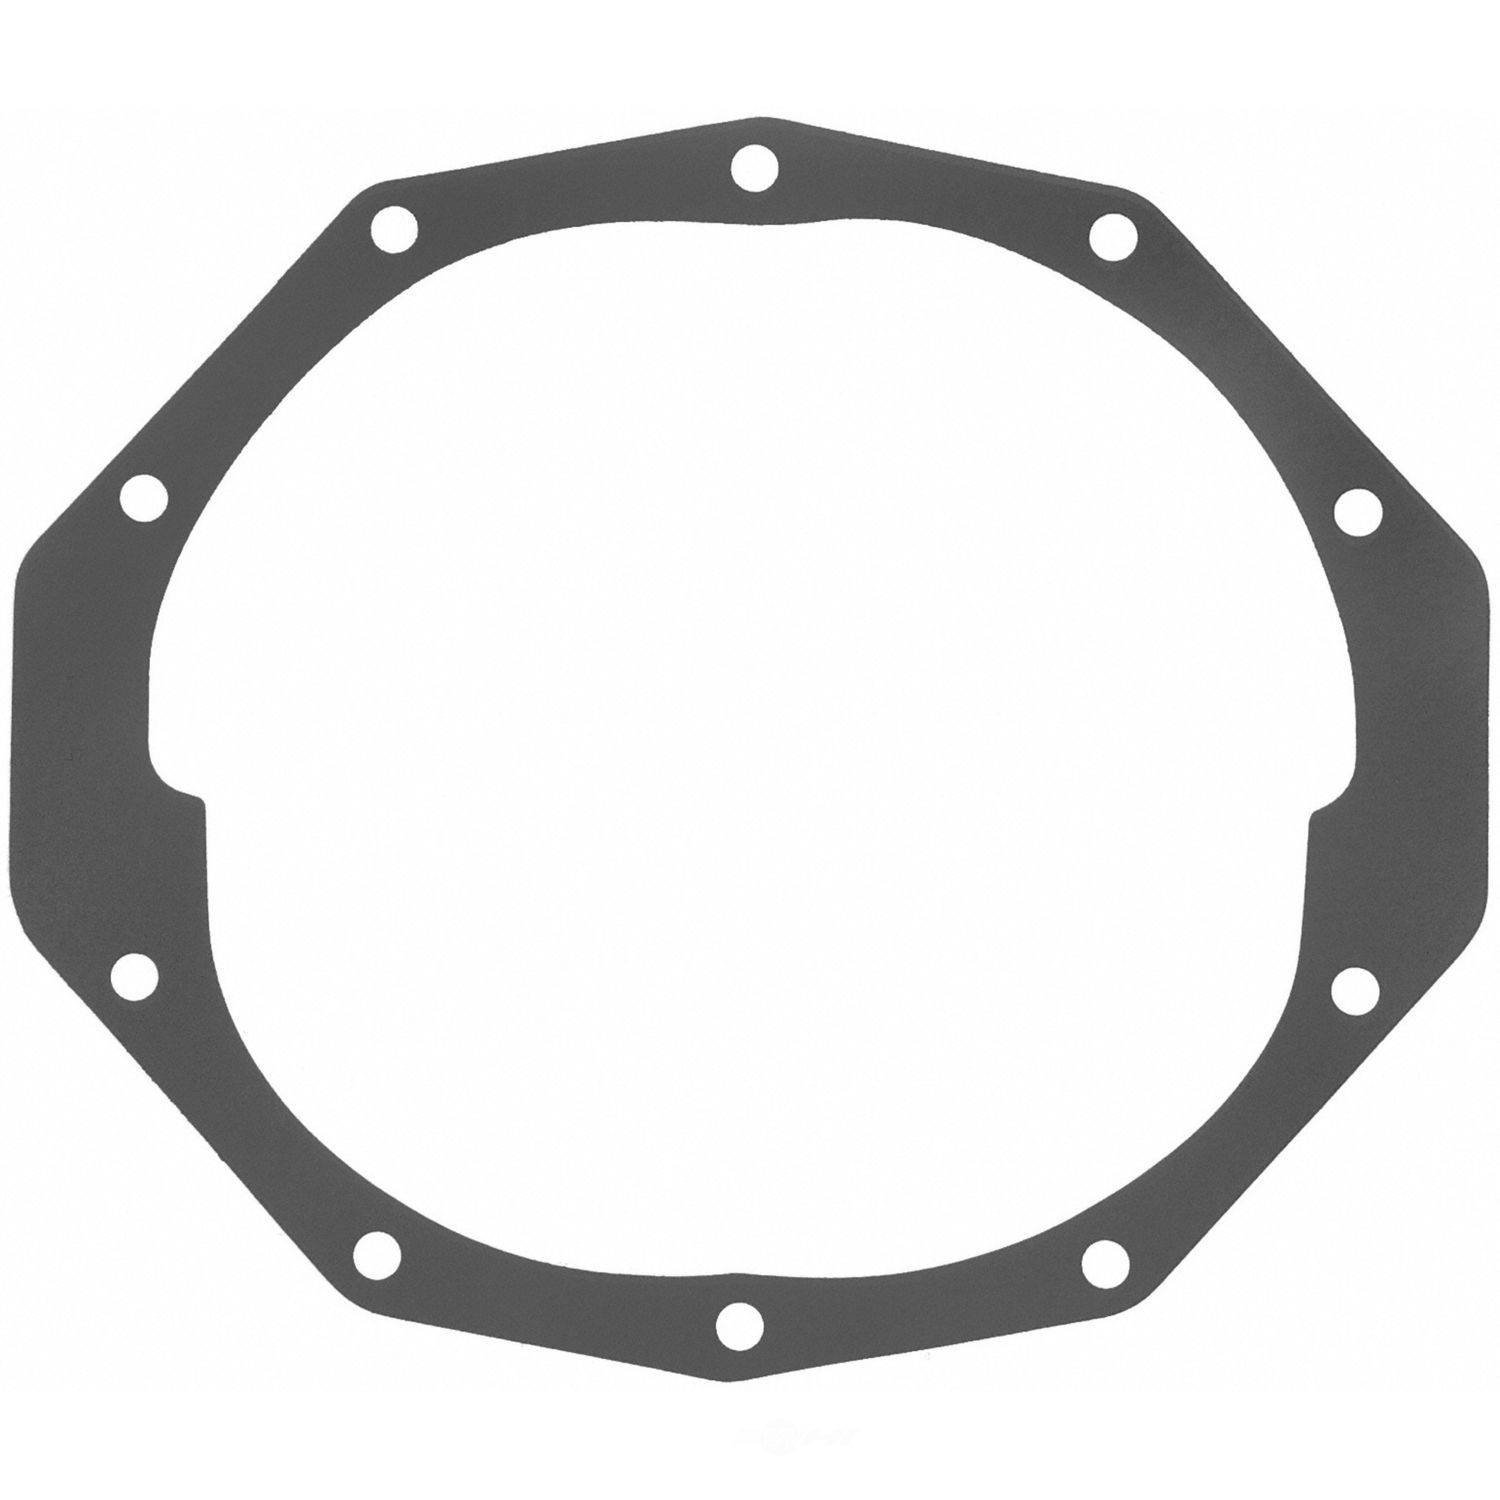 FELPRO - Axle Housing Cover Gasket (Front) - FEL RDS 55391